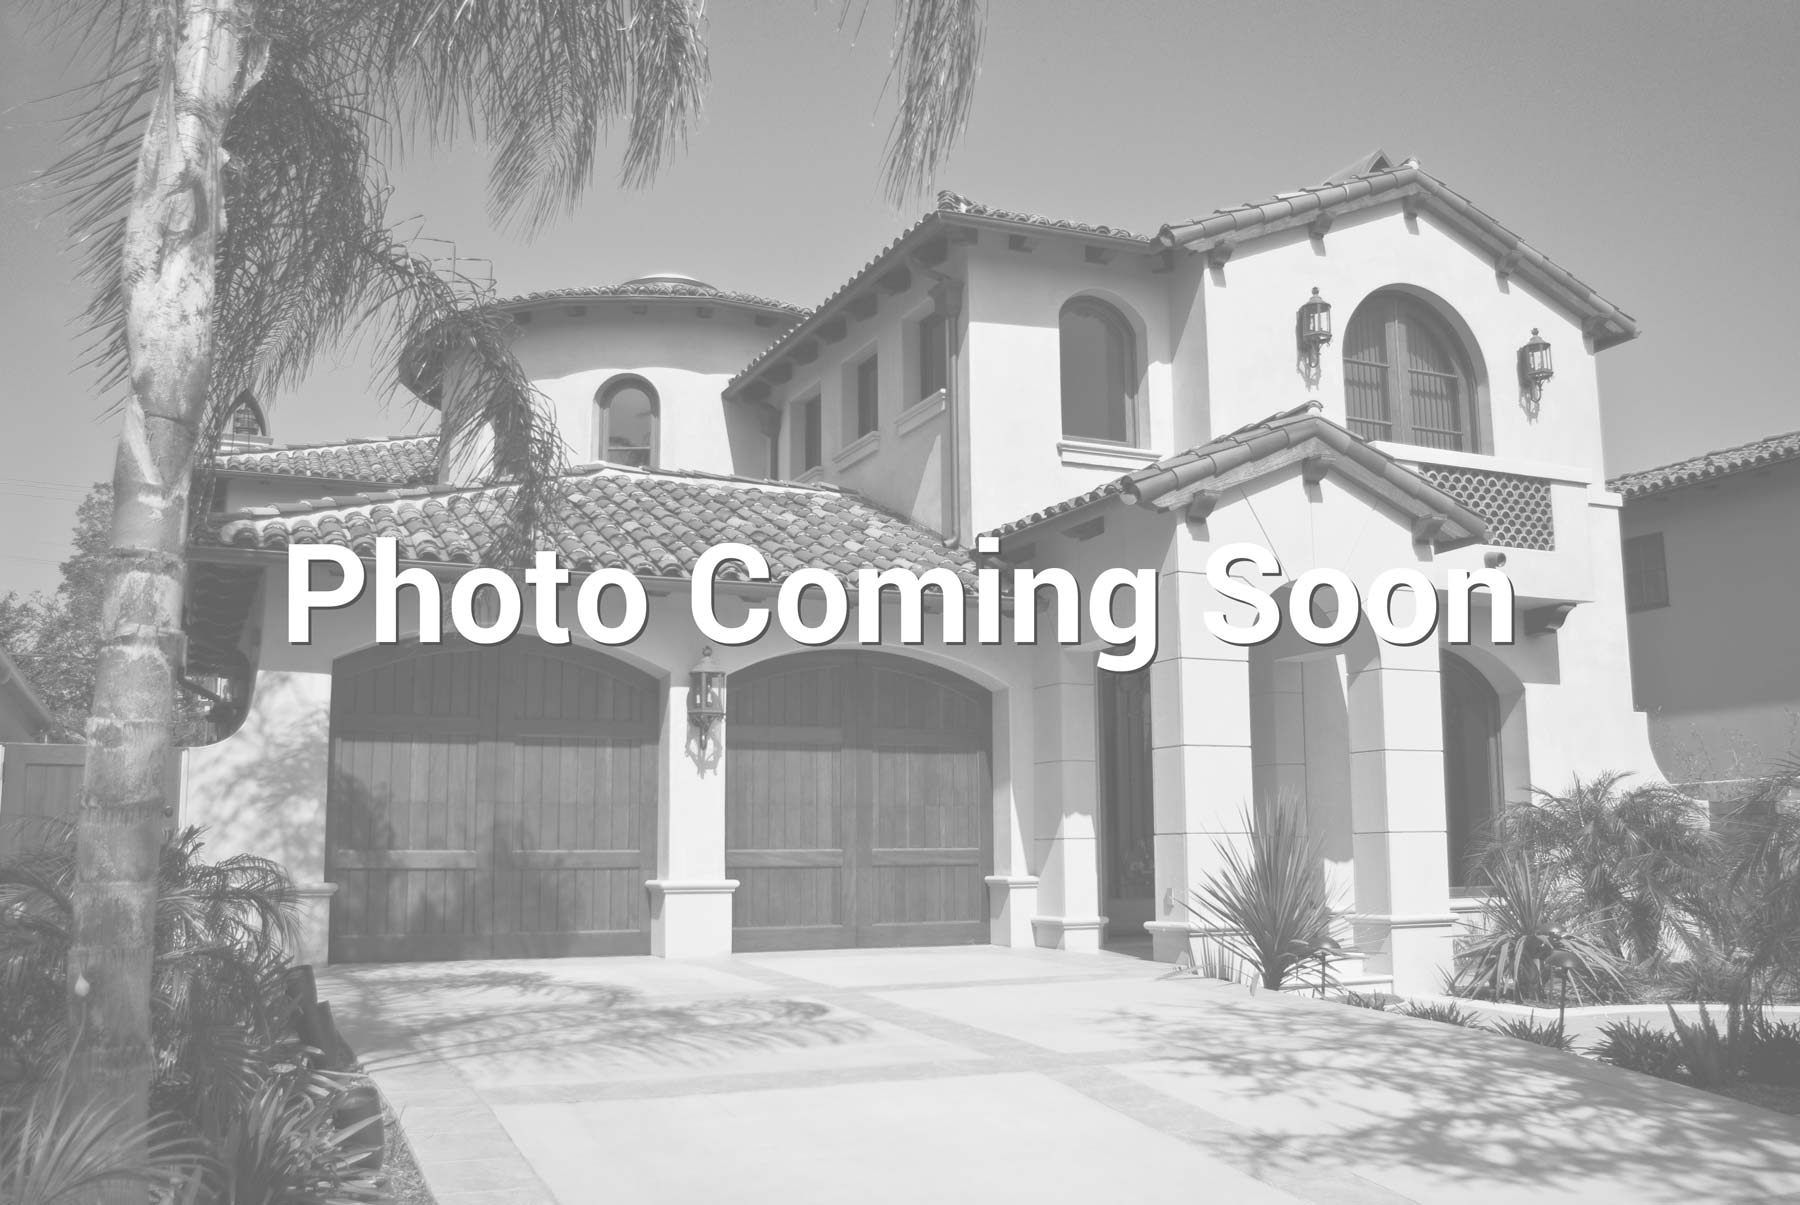 $697,900 - 4Br/3Ba -  for Sale in Landsdale, Monrovia